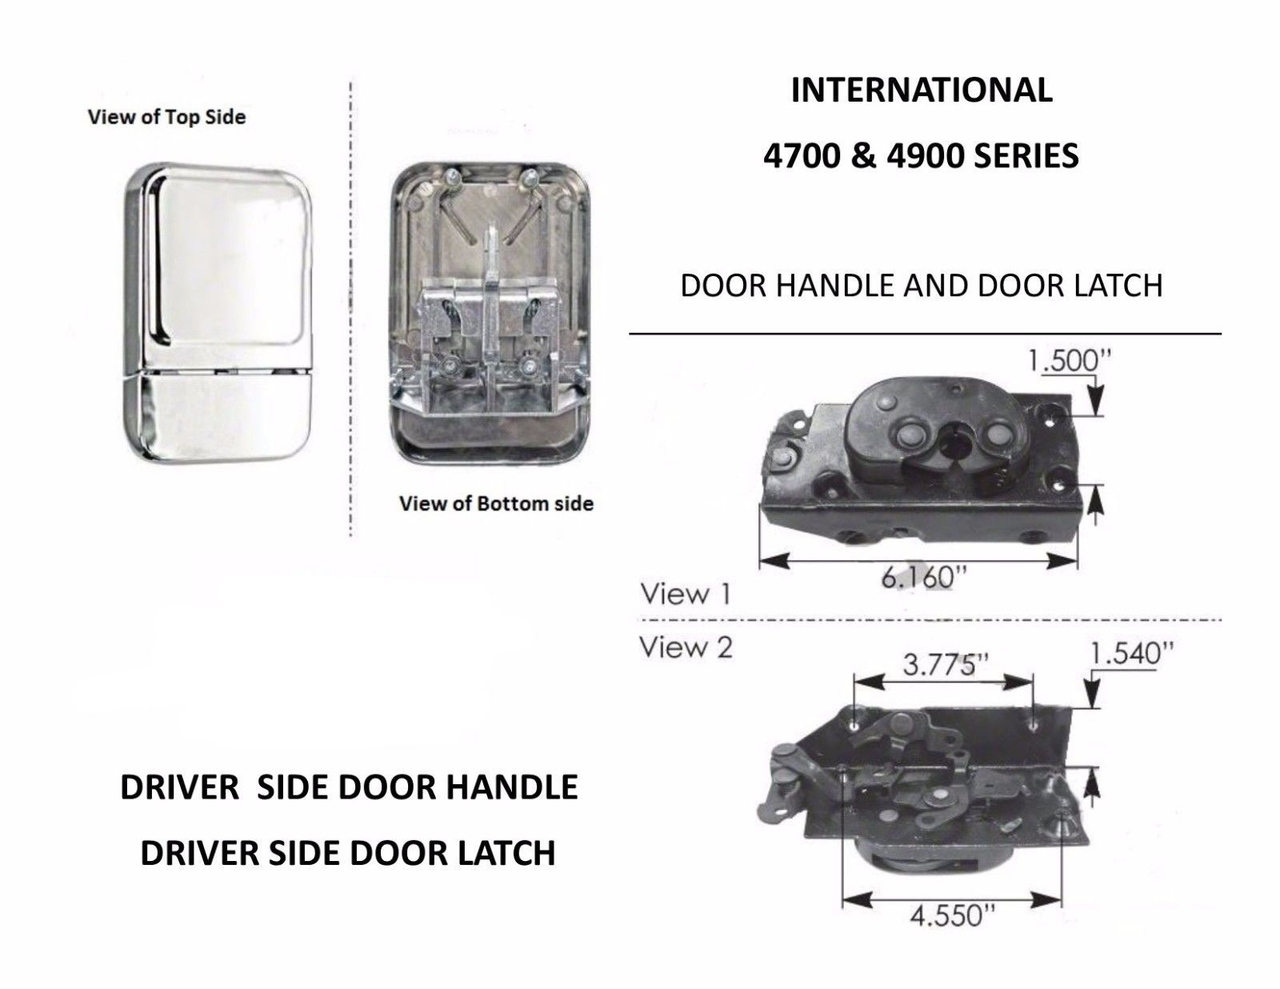 Driver Side Door Handle & Door Latch for International 4700 & 4900 Series Trucks